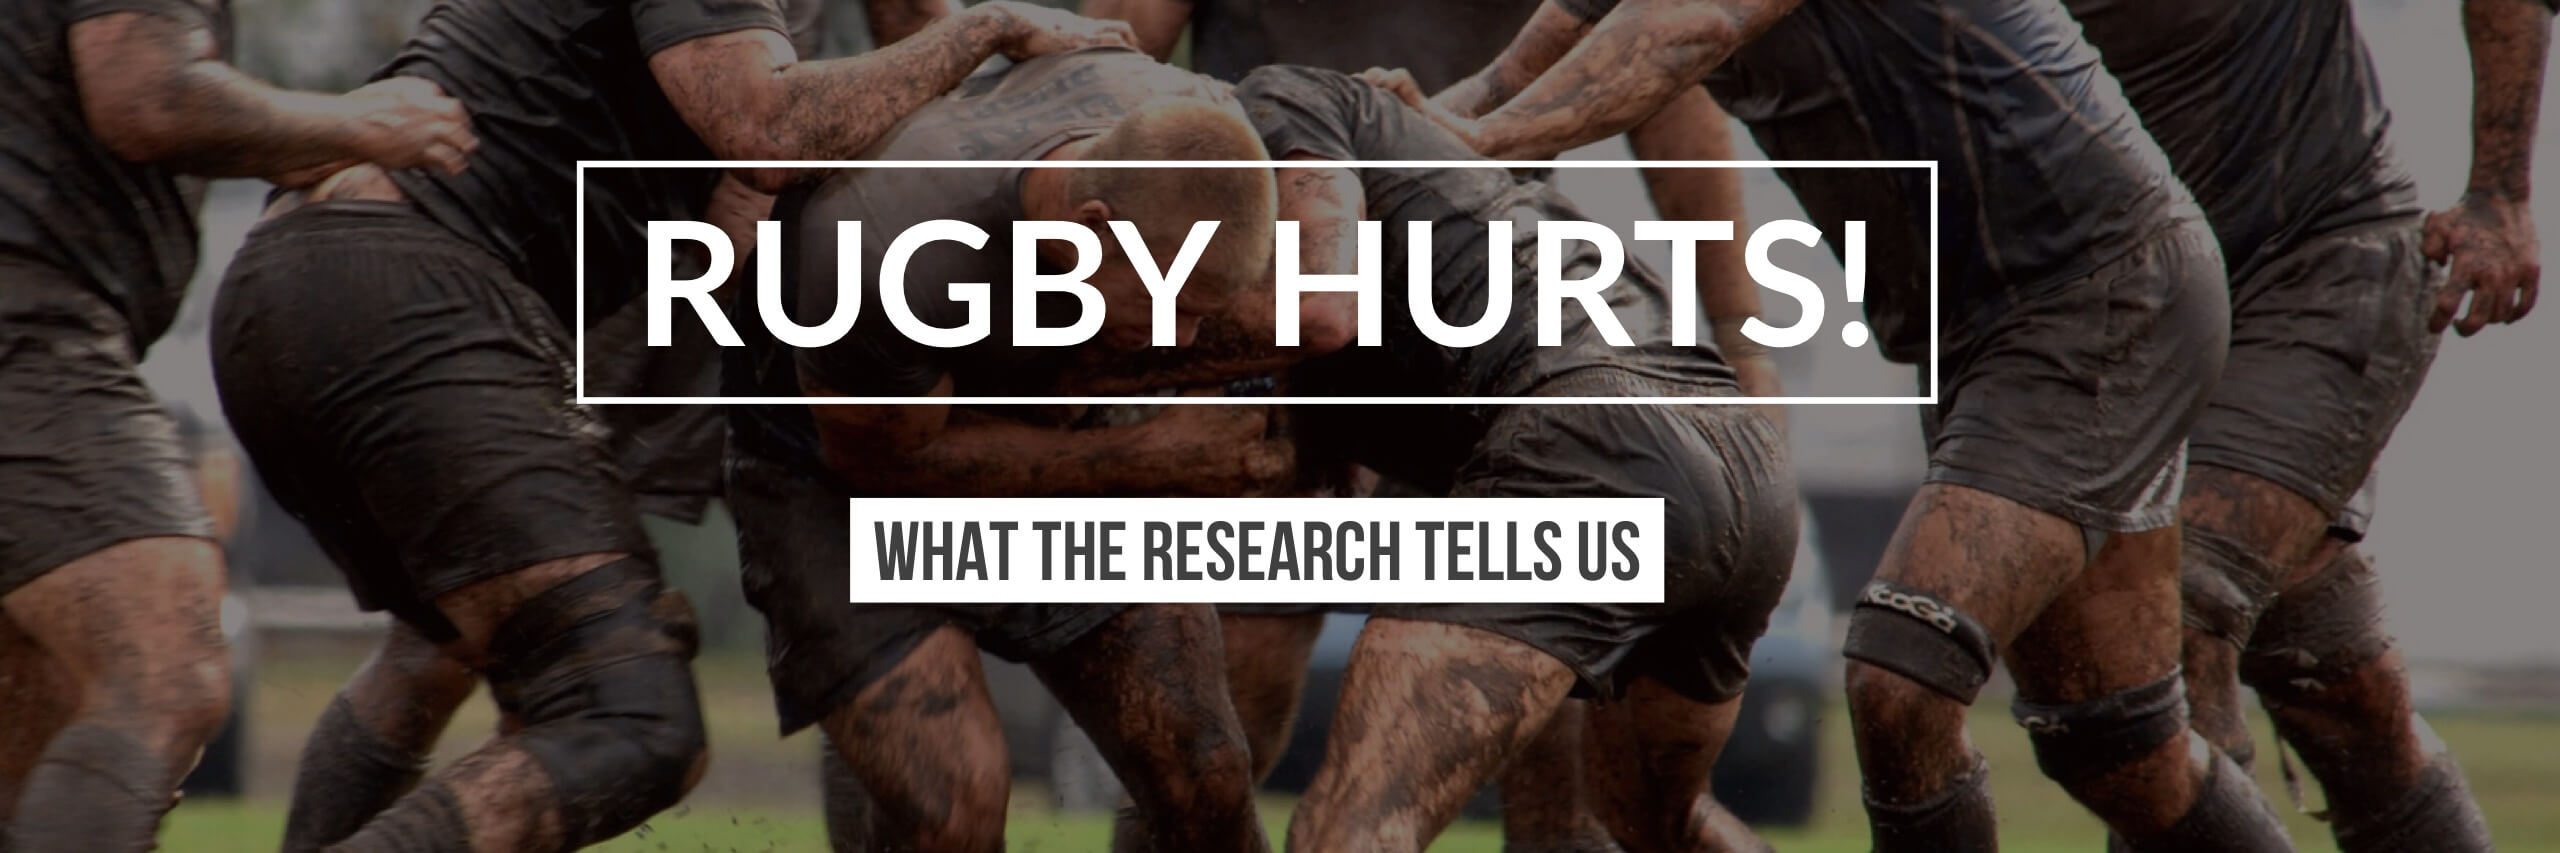 southfields physiotherapy rugby hurts